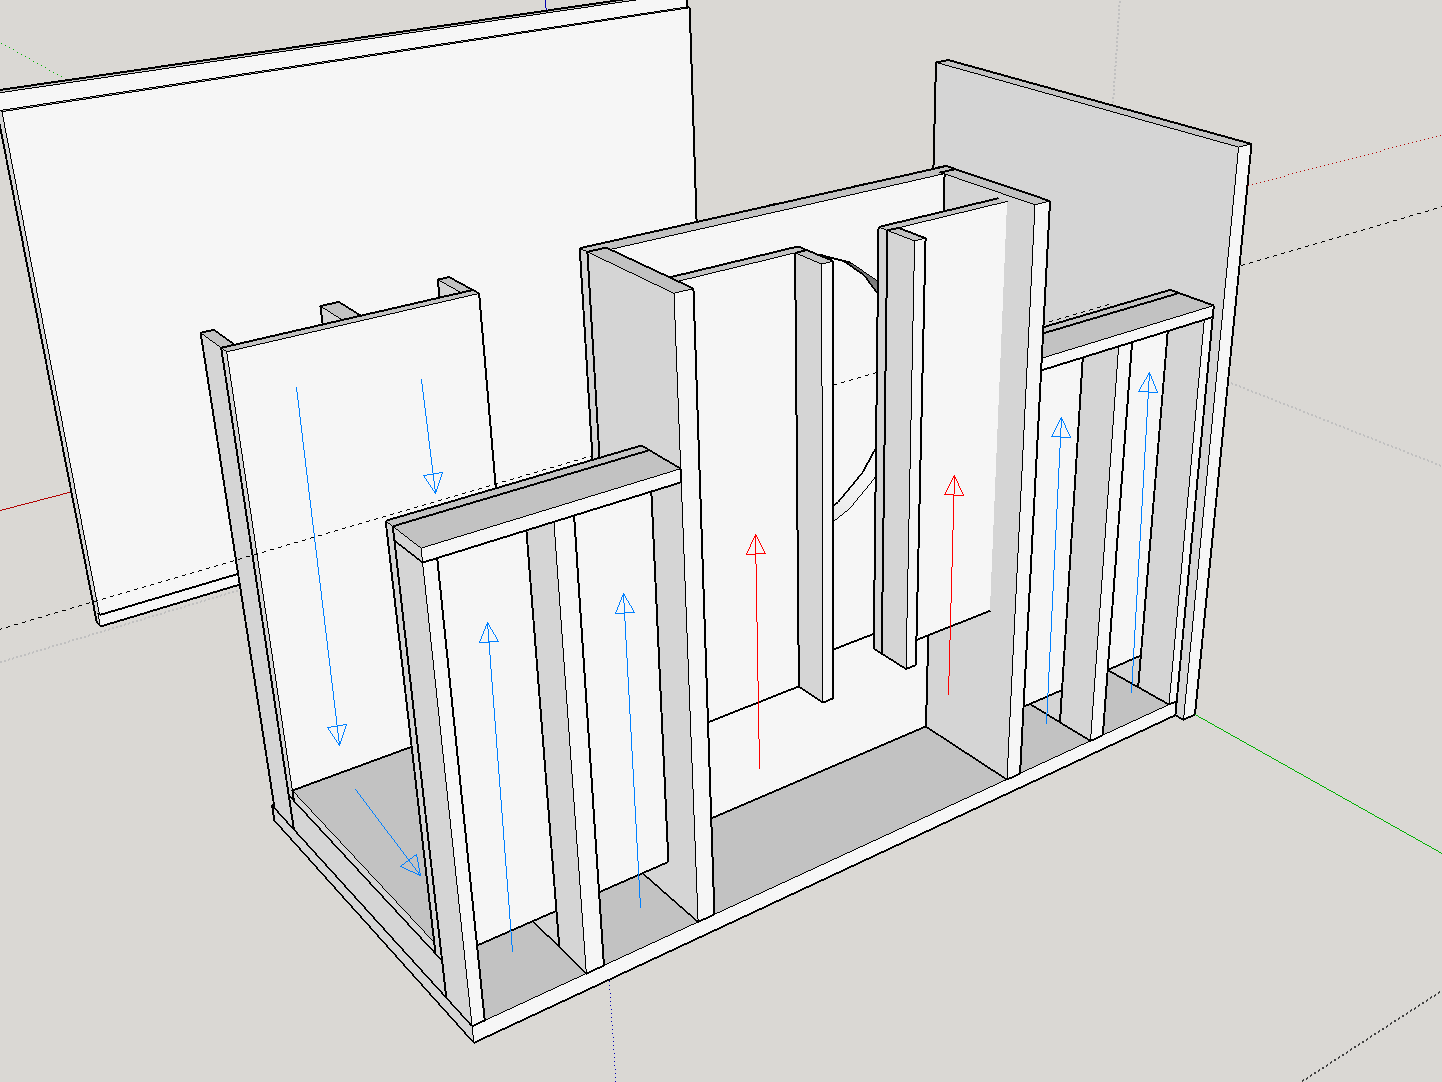 Click image for larger version  Name:ventilator_model_interior_vent_path.png Views:92 Size:31.6 KB ID:1630161